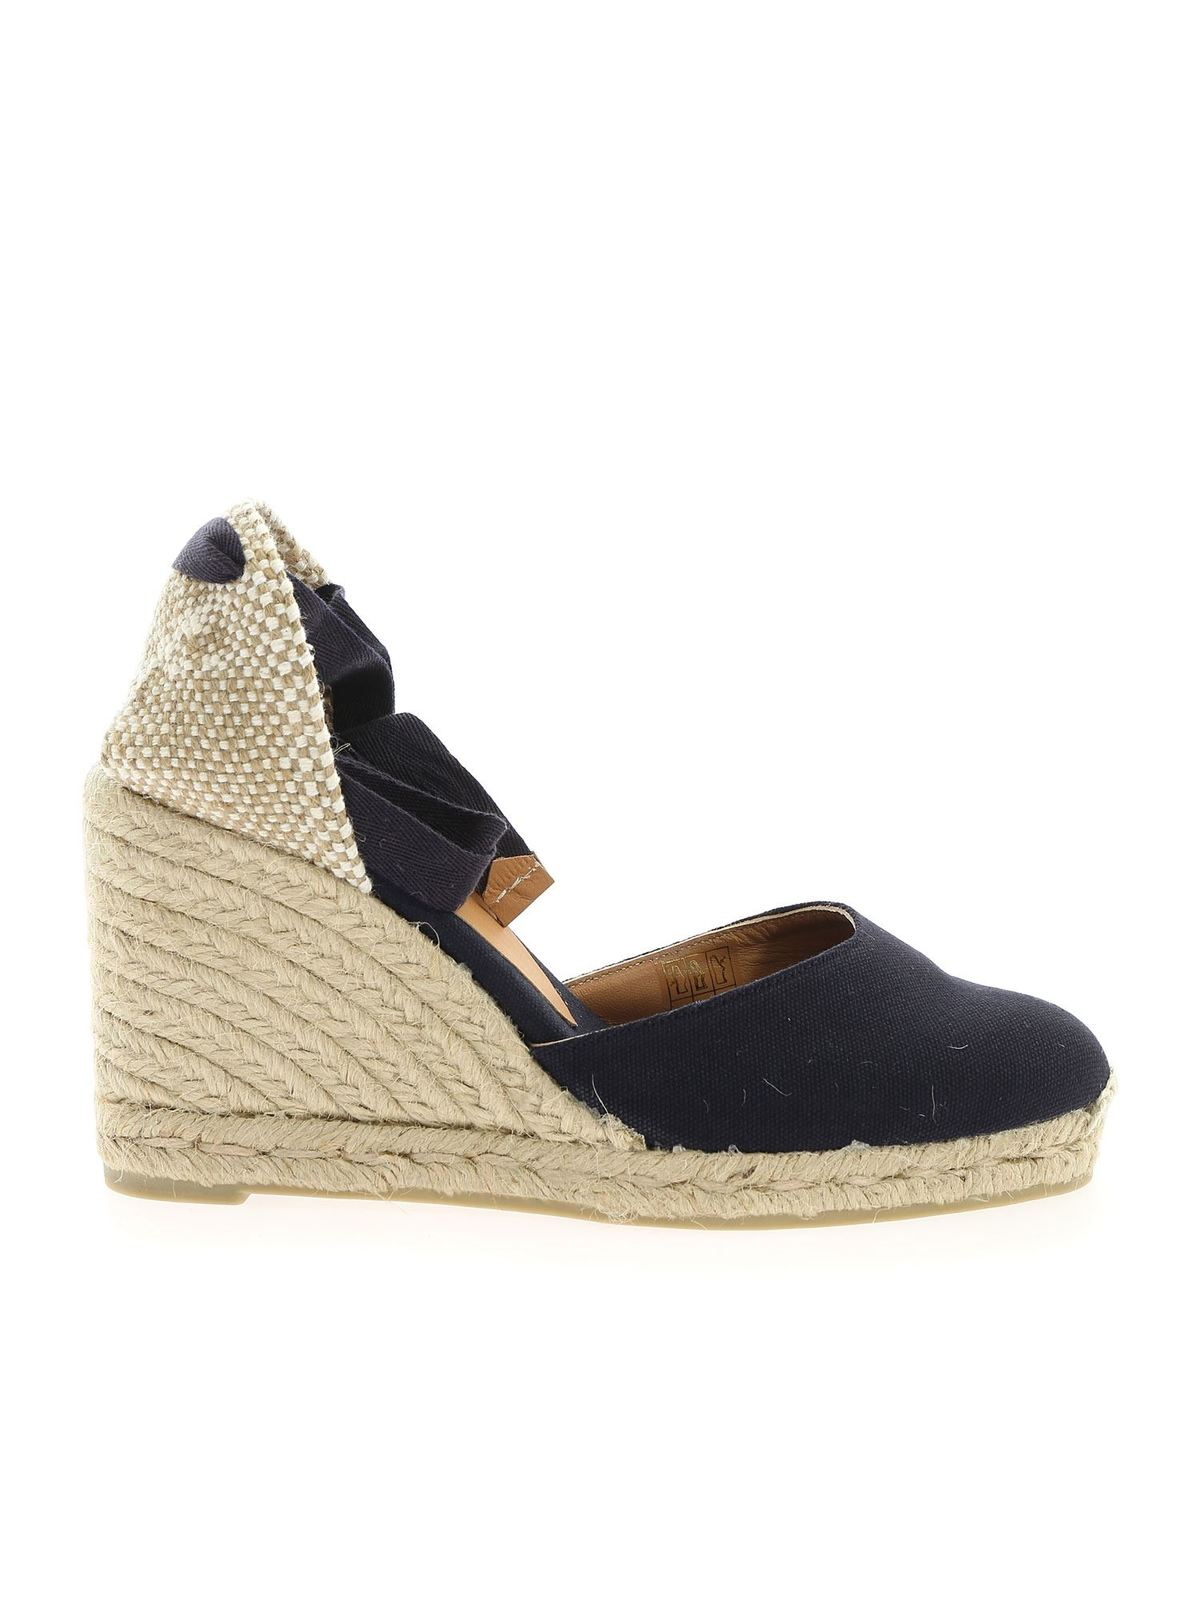 Castaã±er Wedges CARINA ESPADRILLES IN BLUE